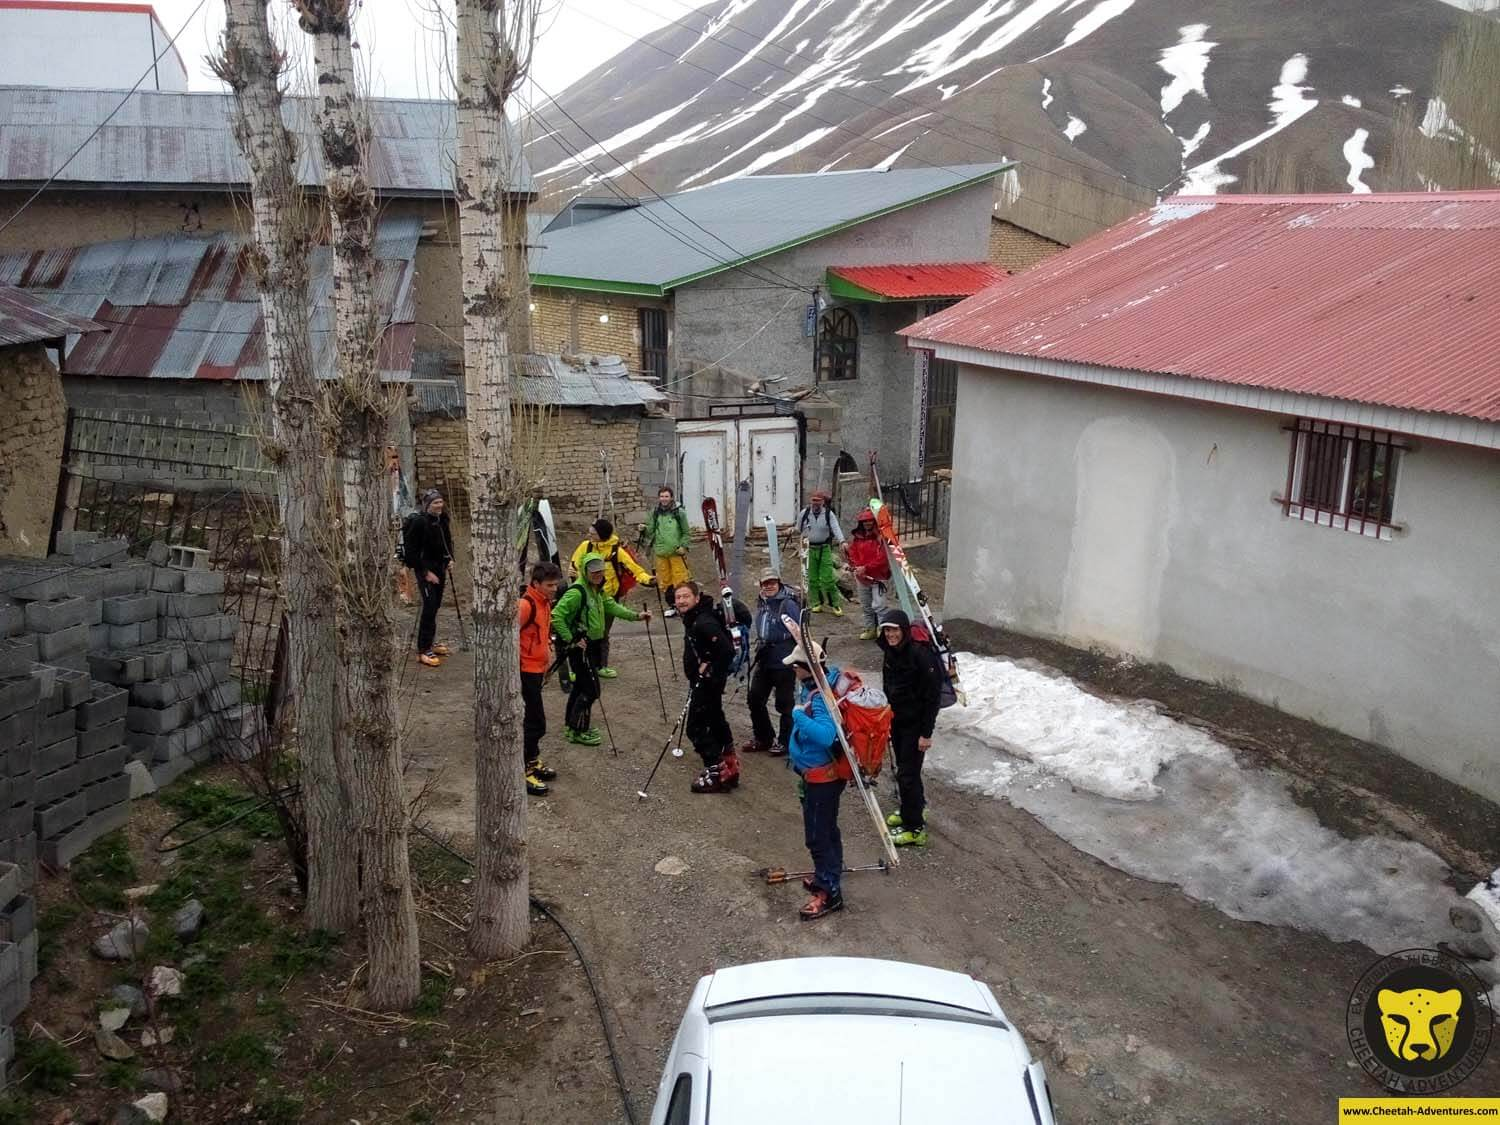 3 Lasem Village (2700m), Getting ready for Ski Touring on Doberar Mountain Range